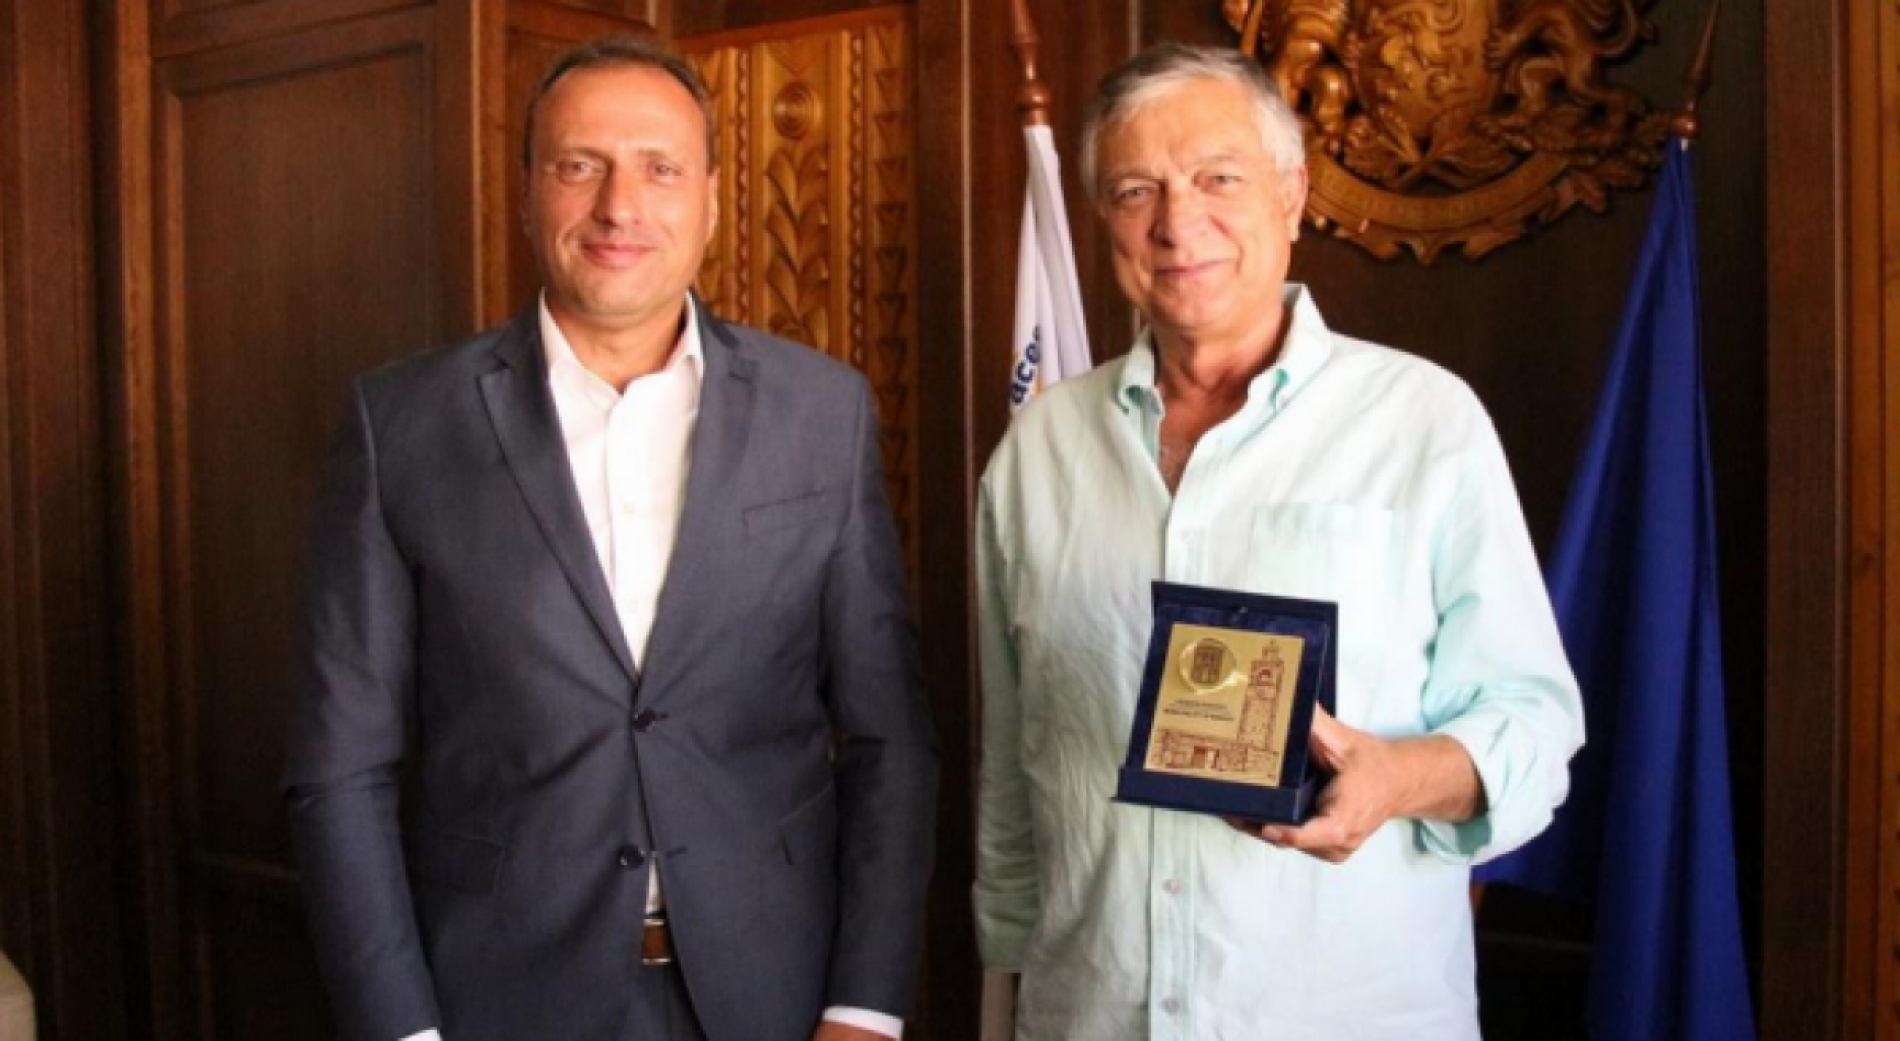 Mayor of Bansko welcomed Honorary Consul of Italy - Antonio Tarquinio